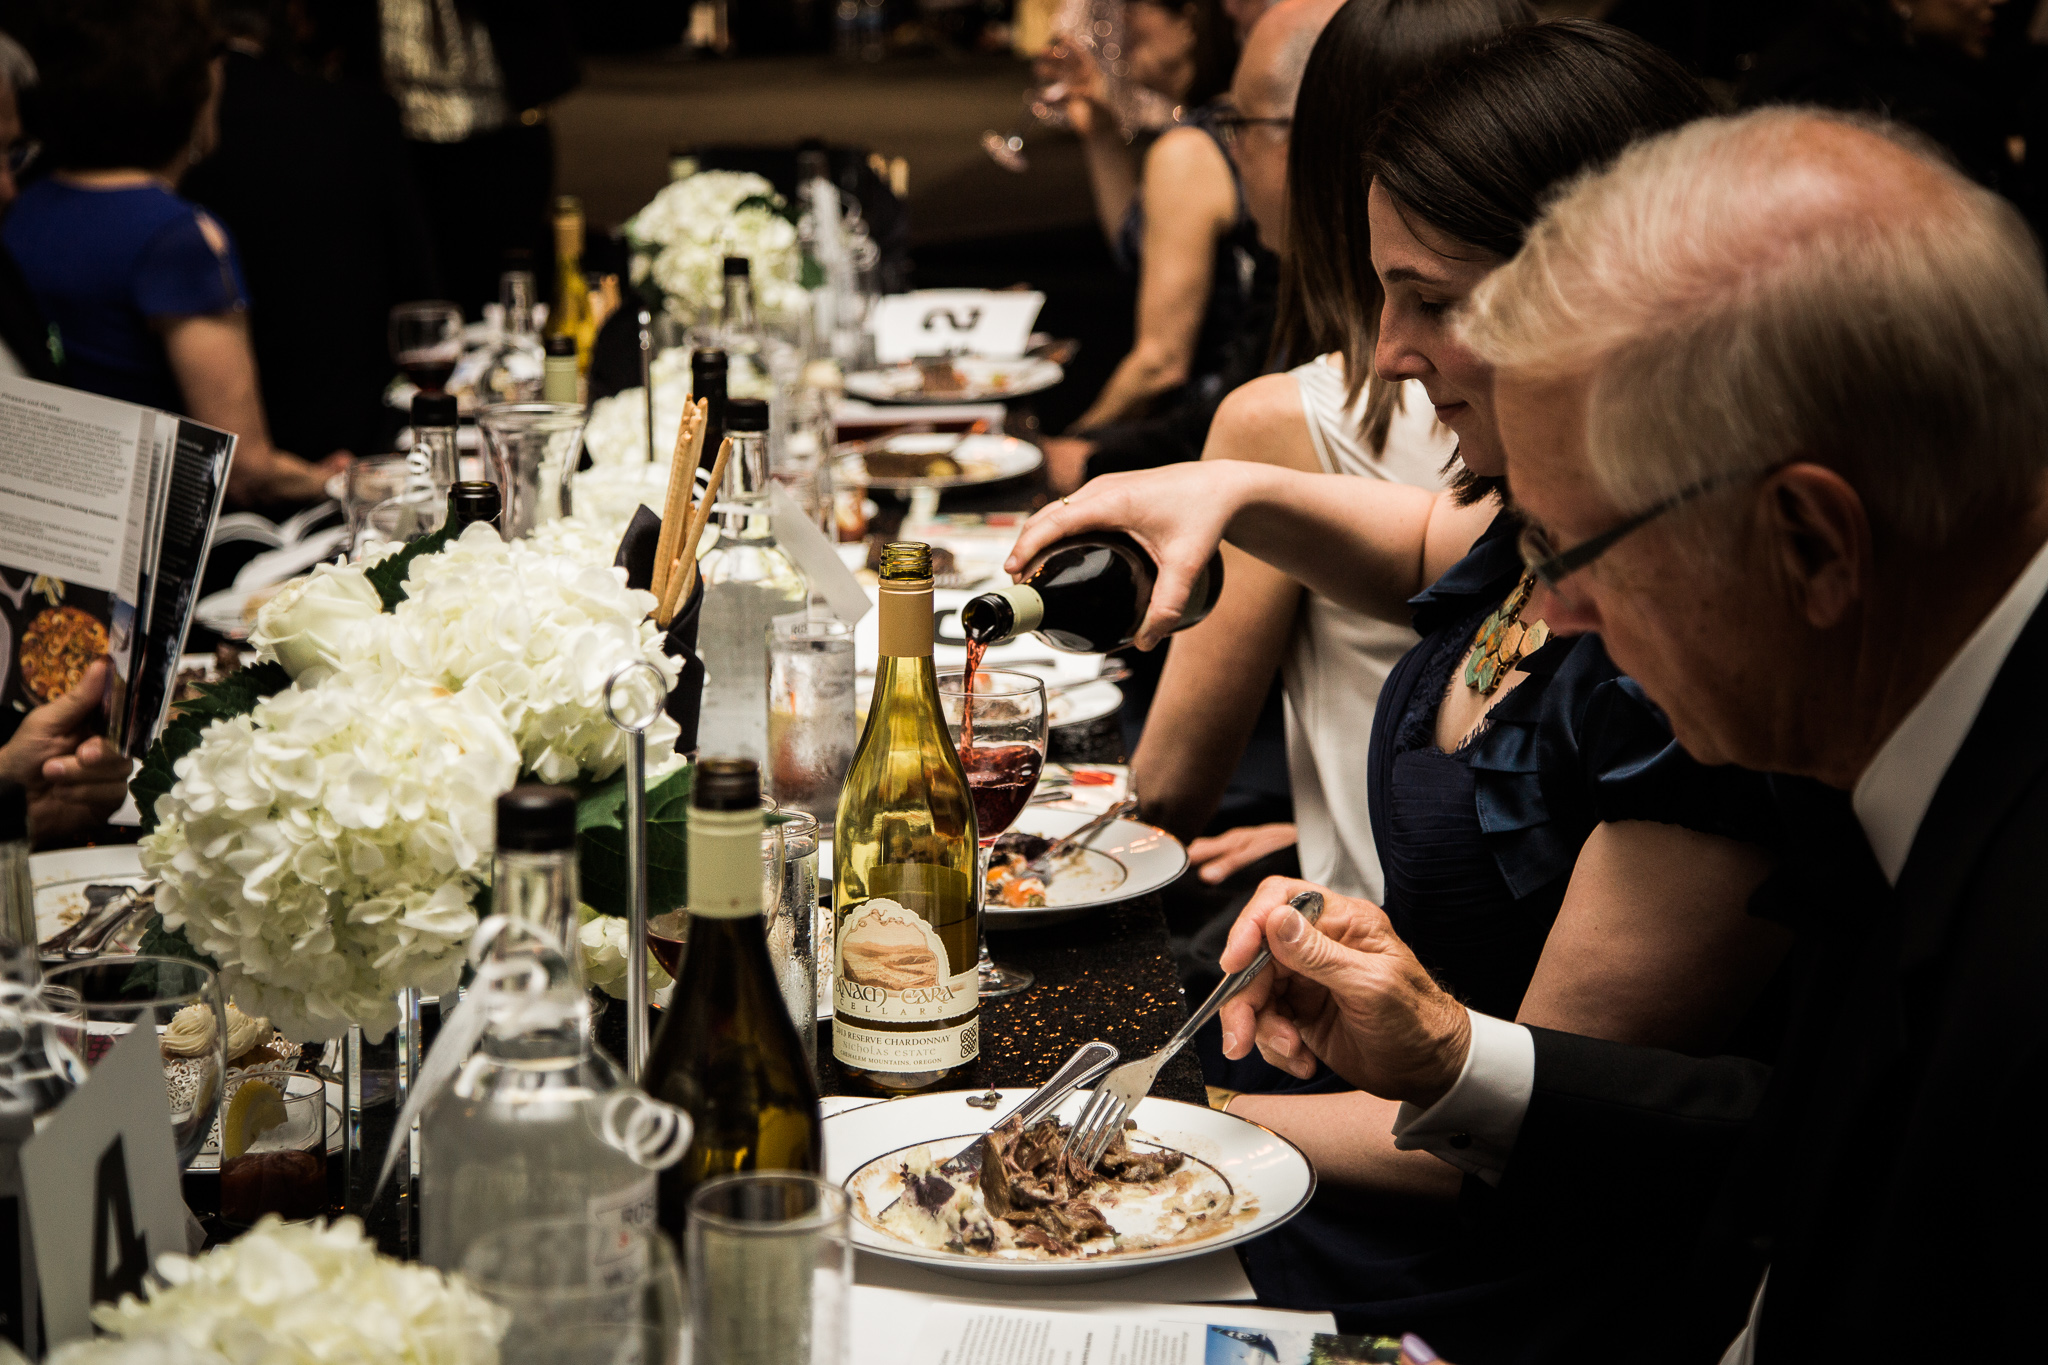 2019 OMSI Gala_Dinner and Fundraising 059_by KLiK Concepts_web res.jpg